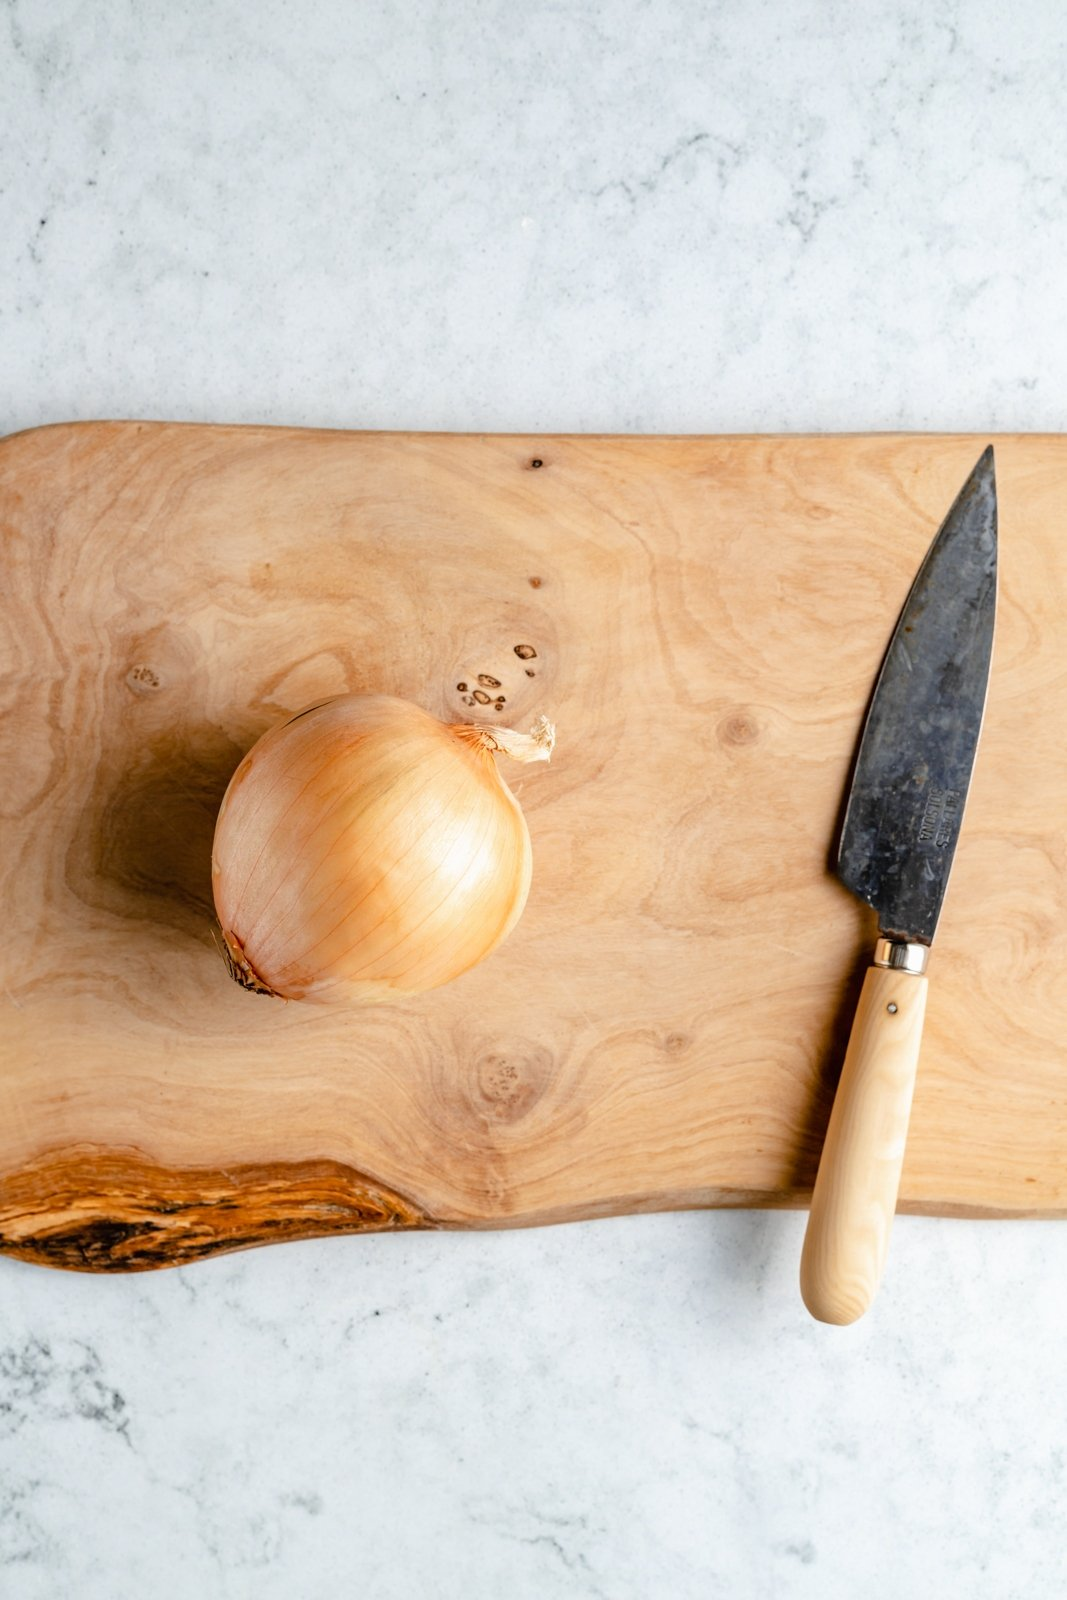 onion on a cutting board with a knife